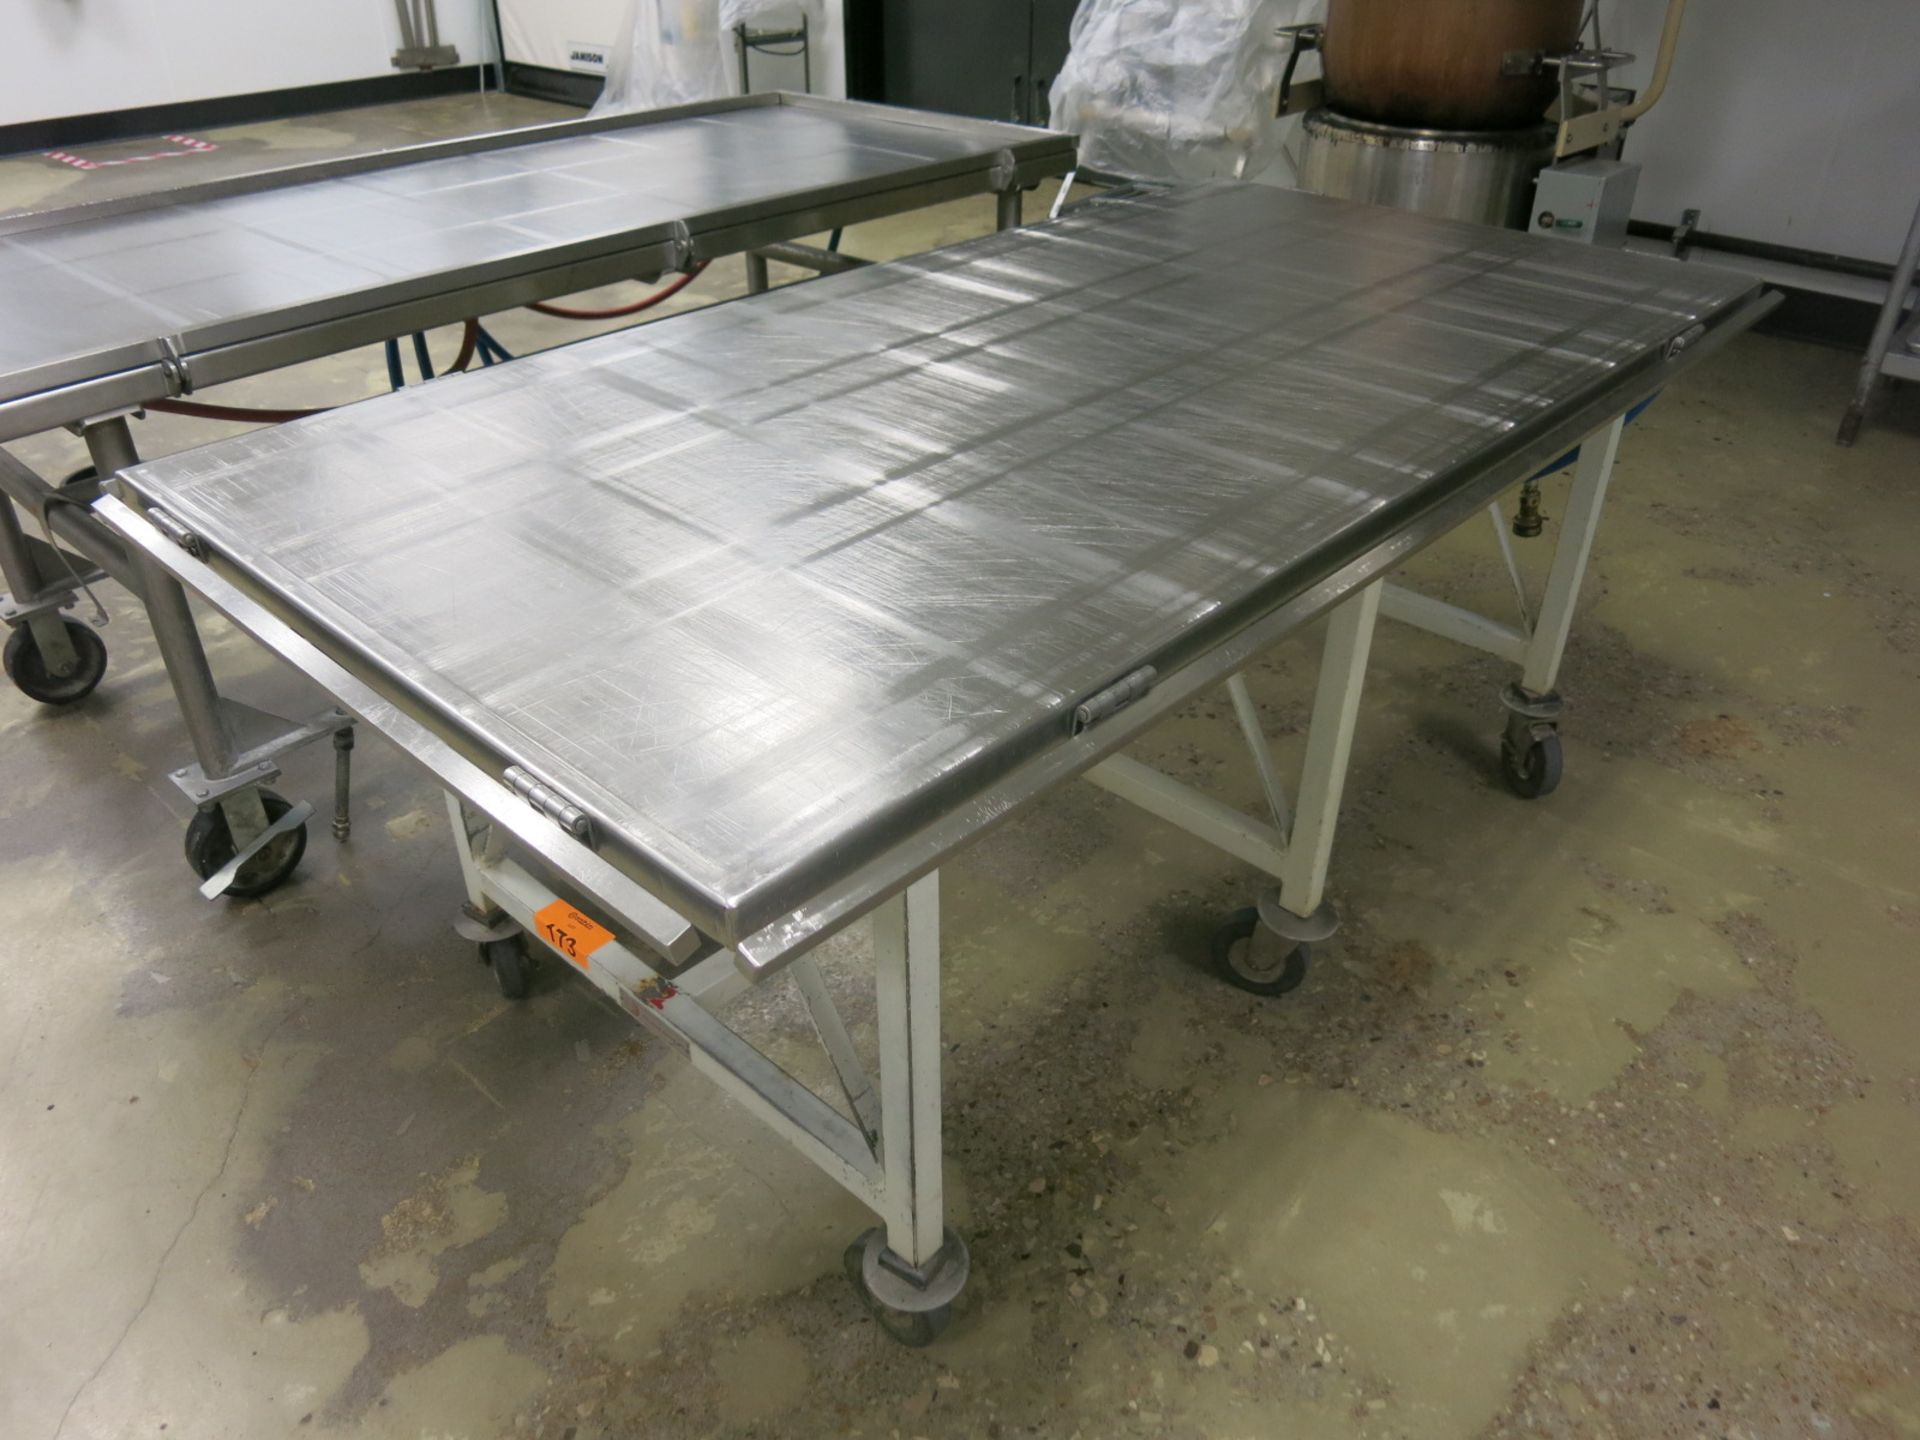 Lot 173 - Hot/Cold Table